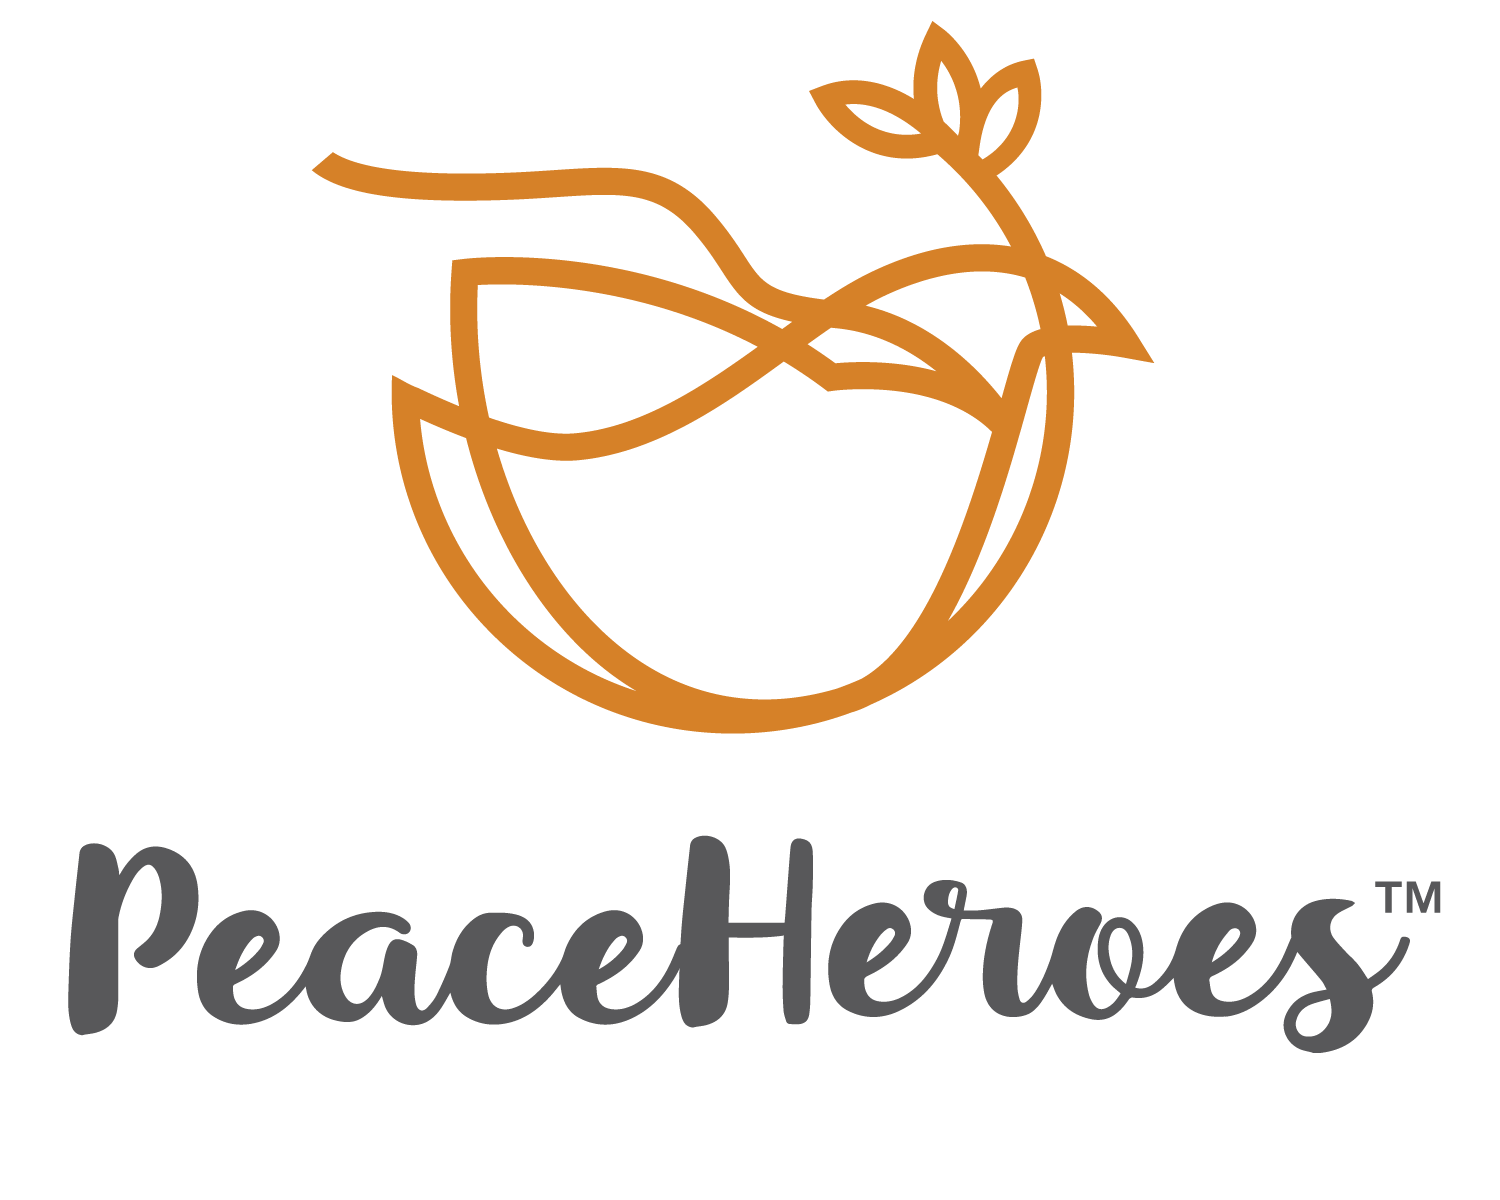 PEACEHEROES_logo_145.png